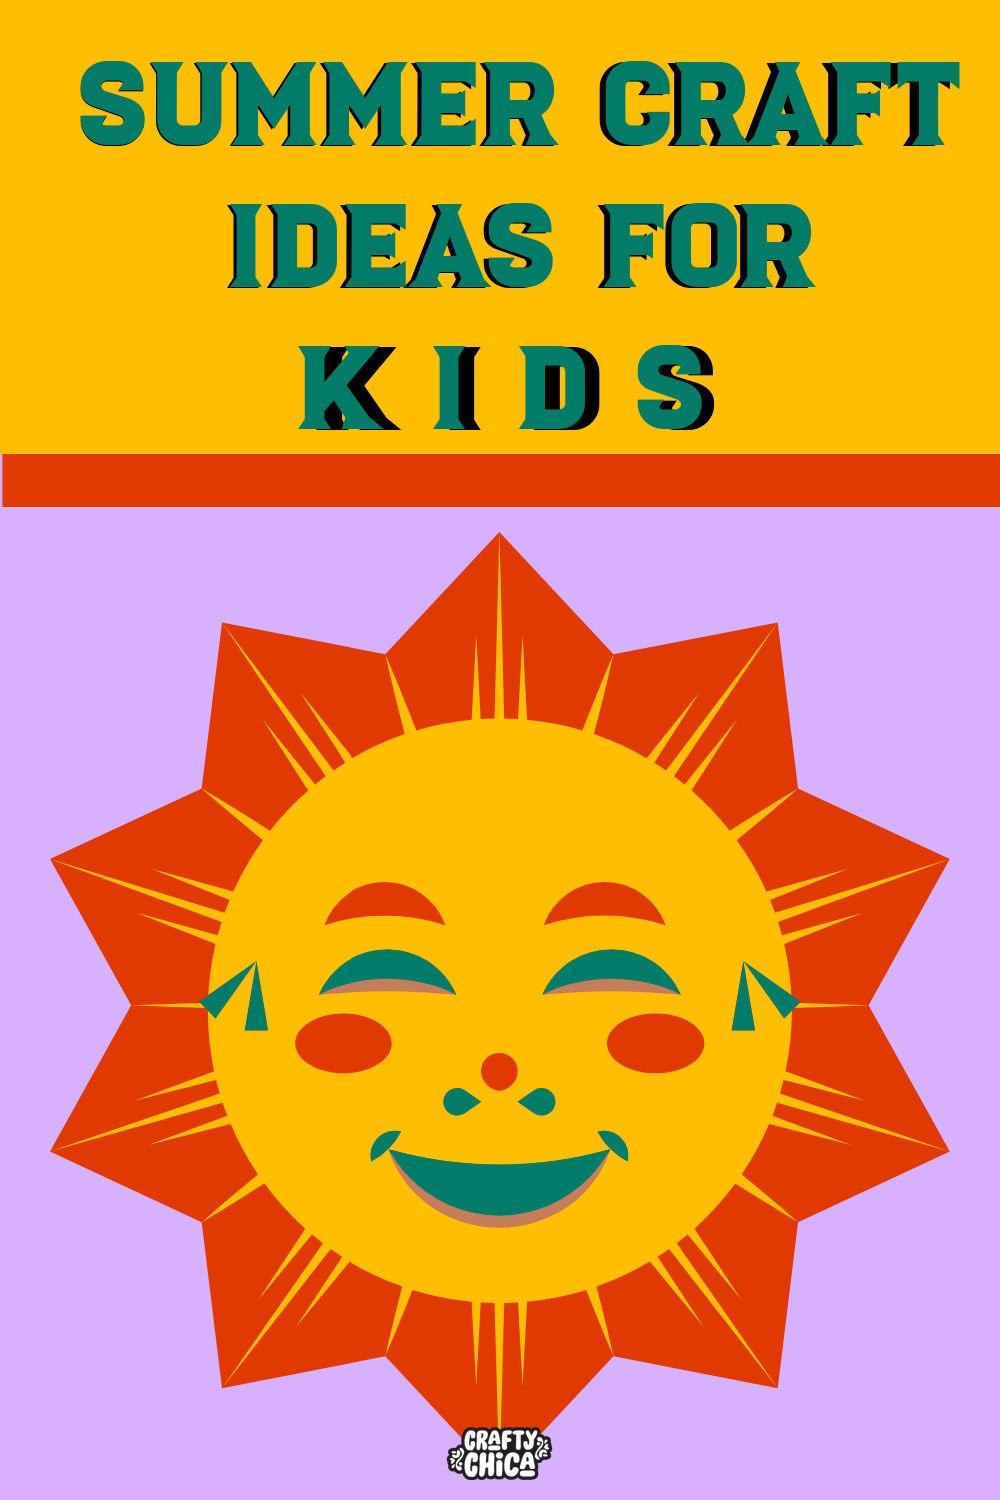 SUMMERcrafting for kids